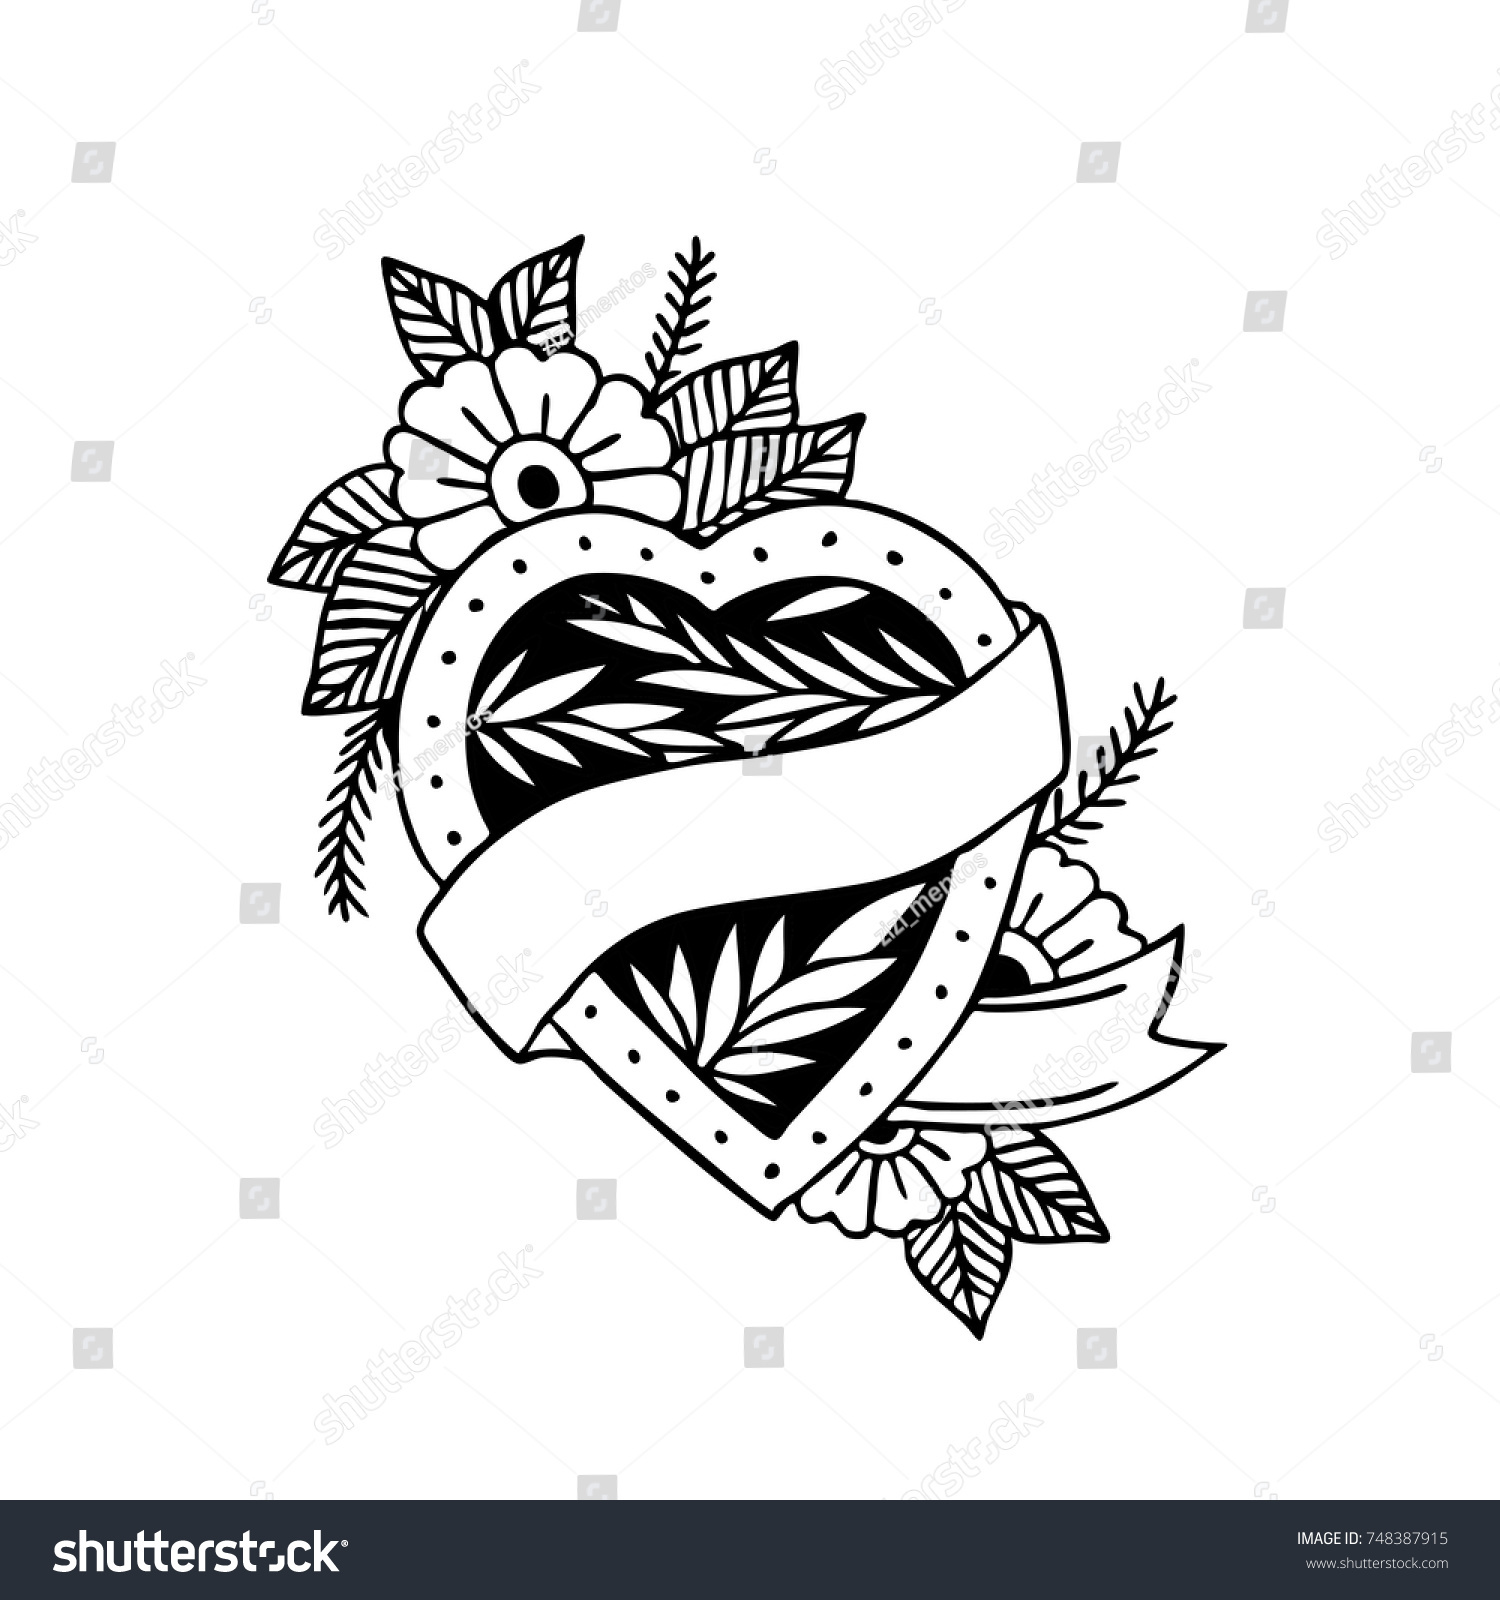 Heart Traditional Tattoo Flash Stock Vector Royalty Free 748387915